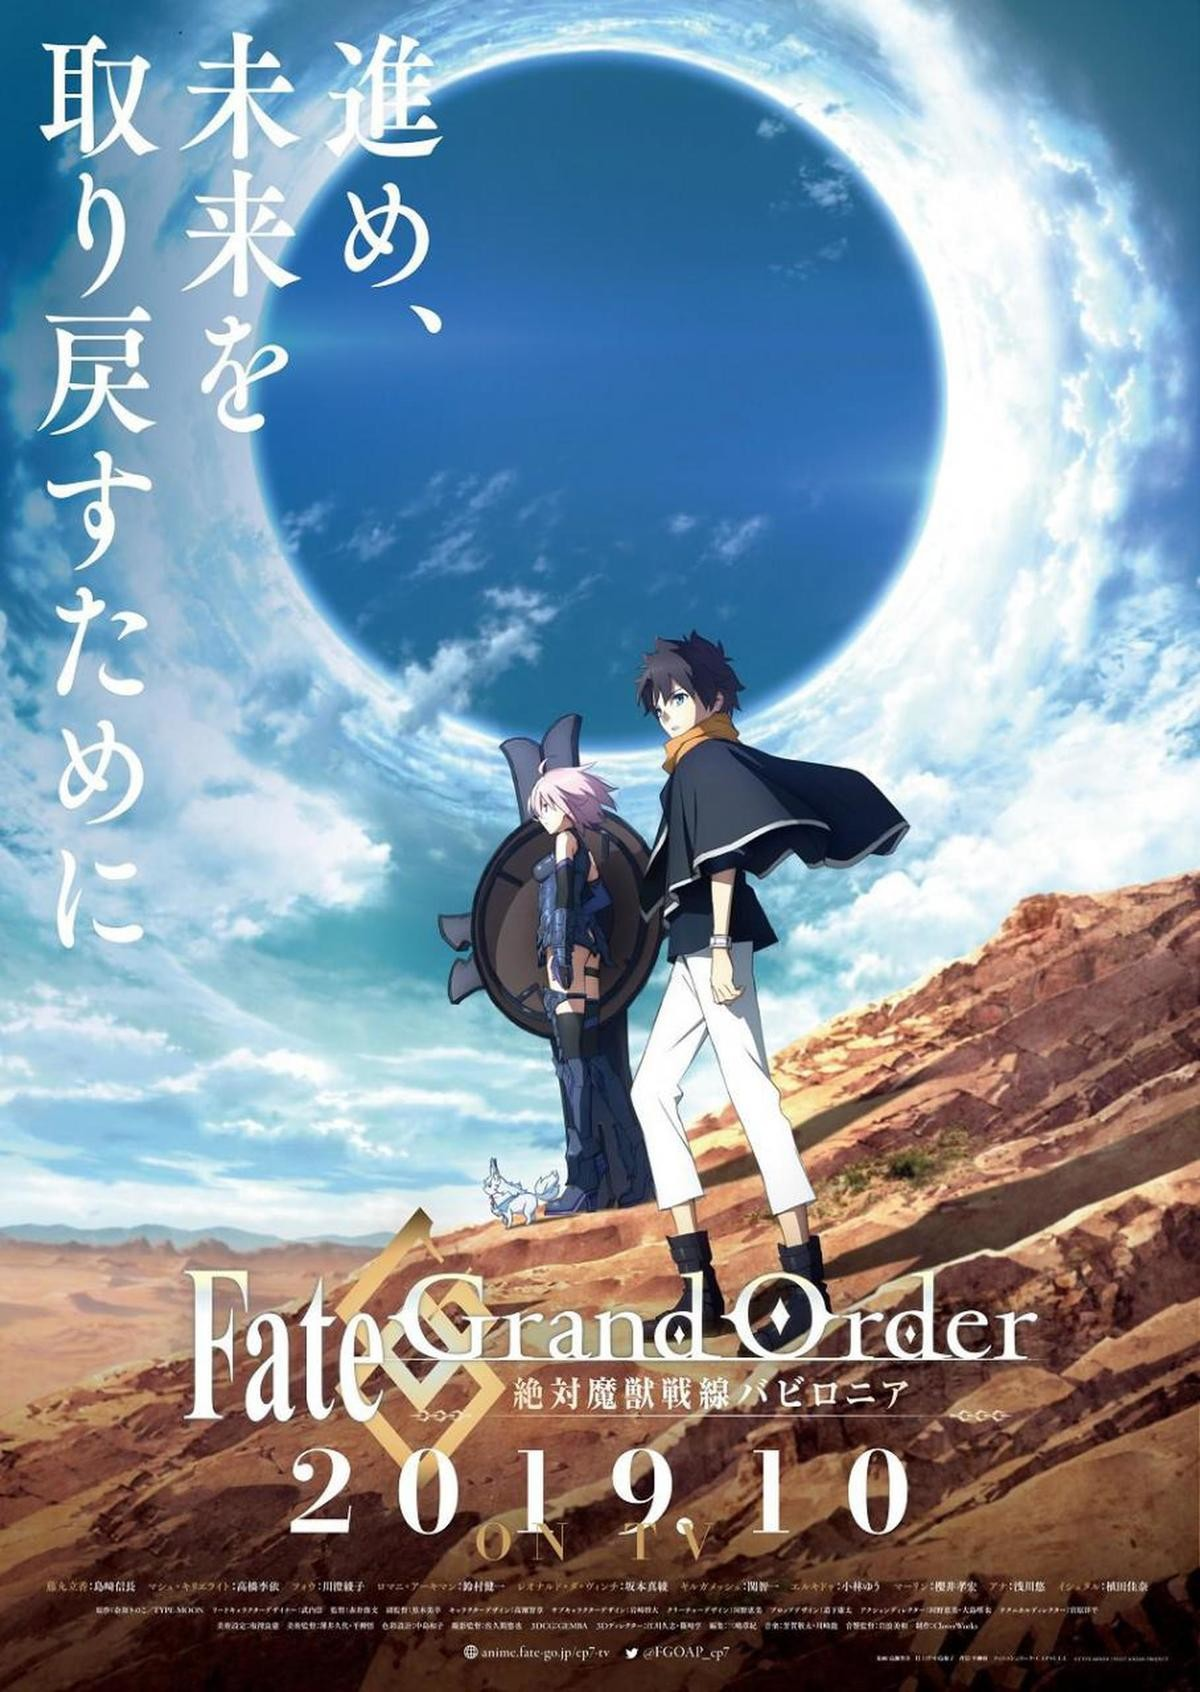 Fate/Grand Order: Zettai Majuu Sensen Babylonia Episode 0. The first episode (0) is out now, check it out on your favorite streaming site. I thought it was very